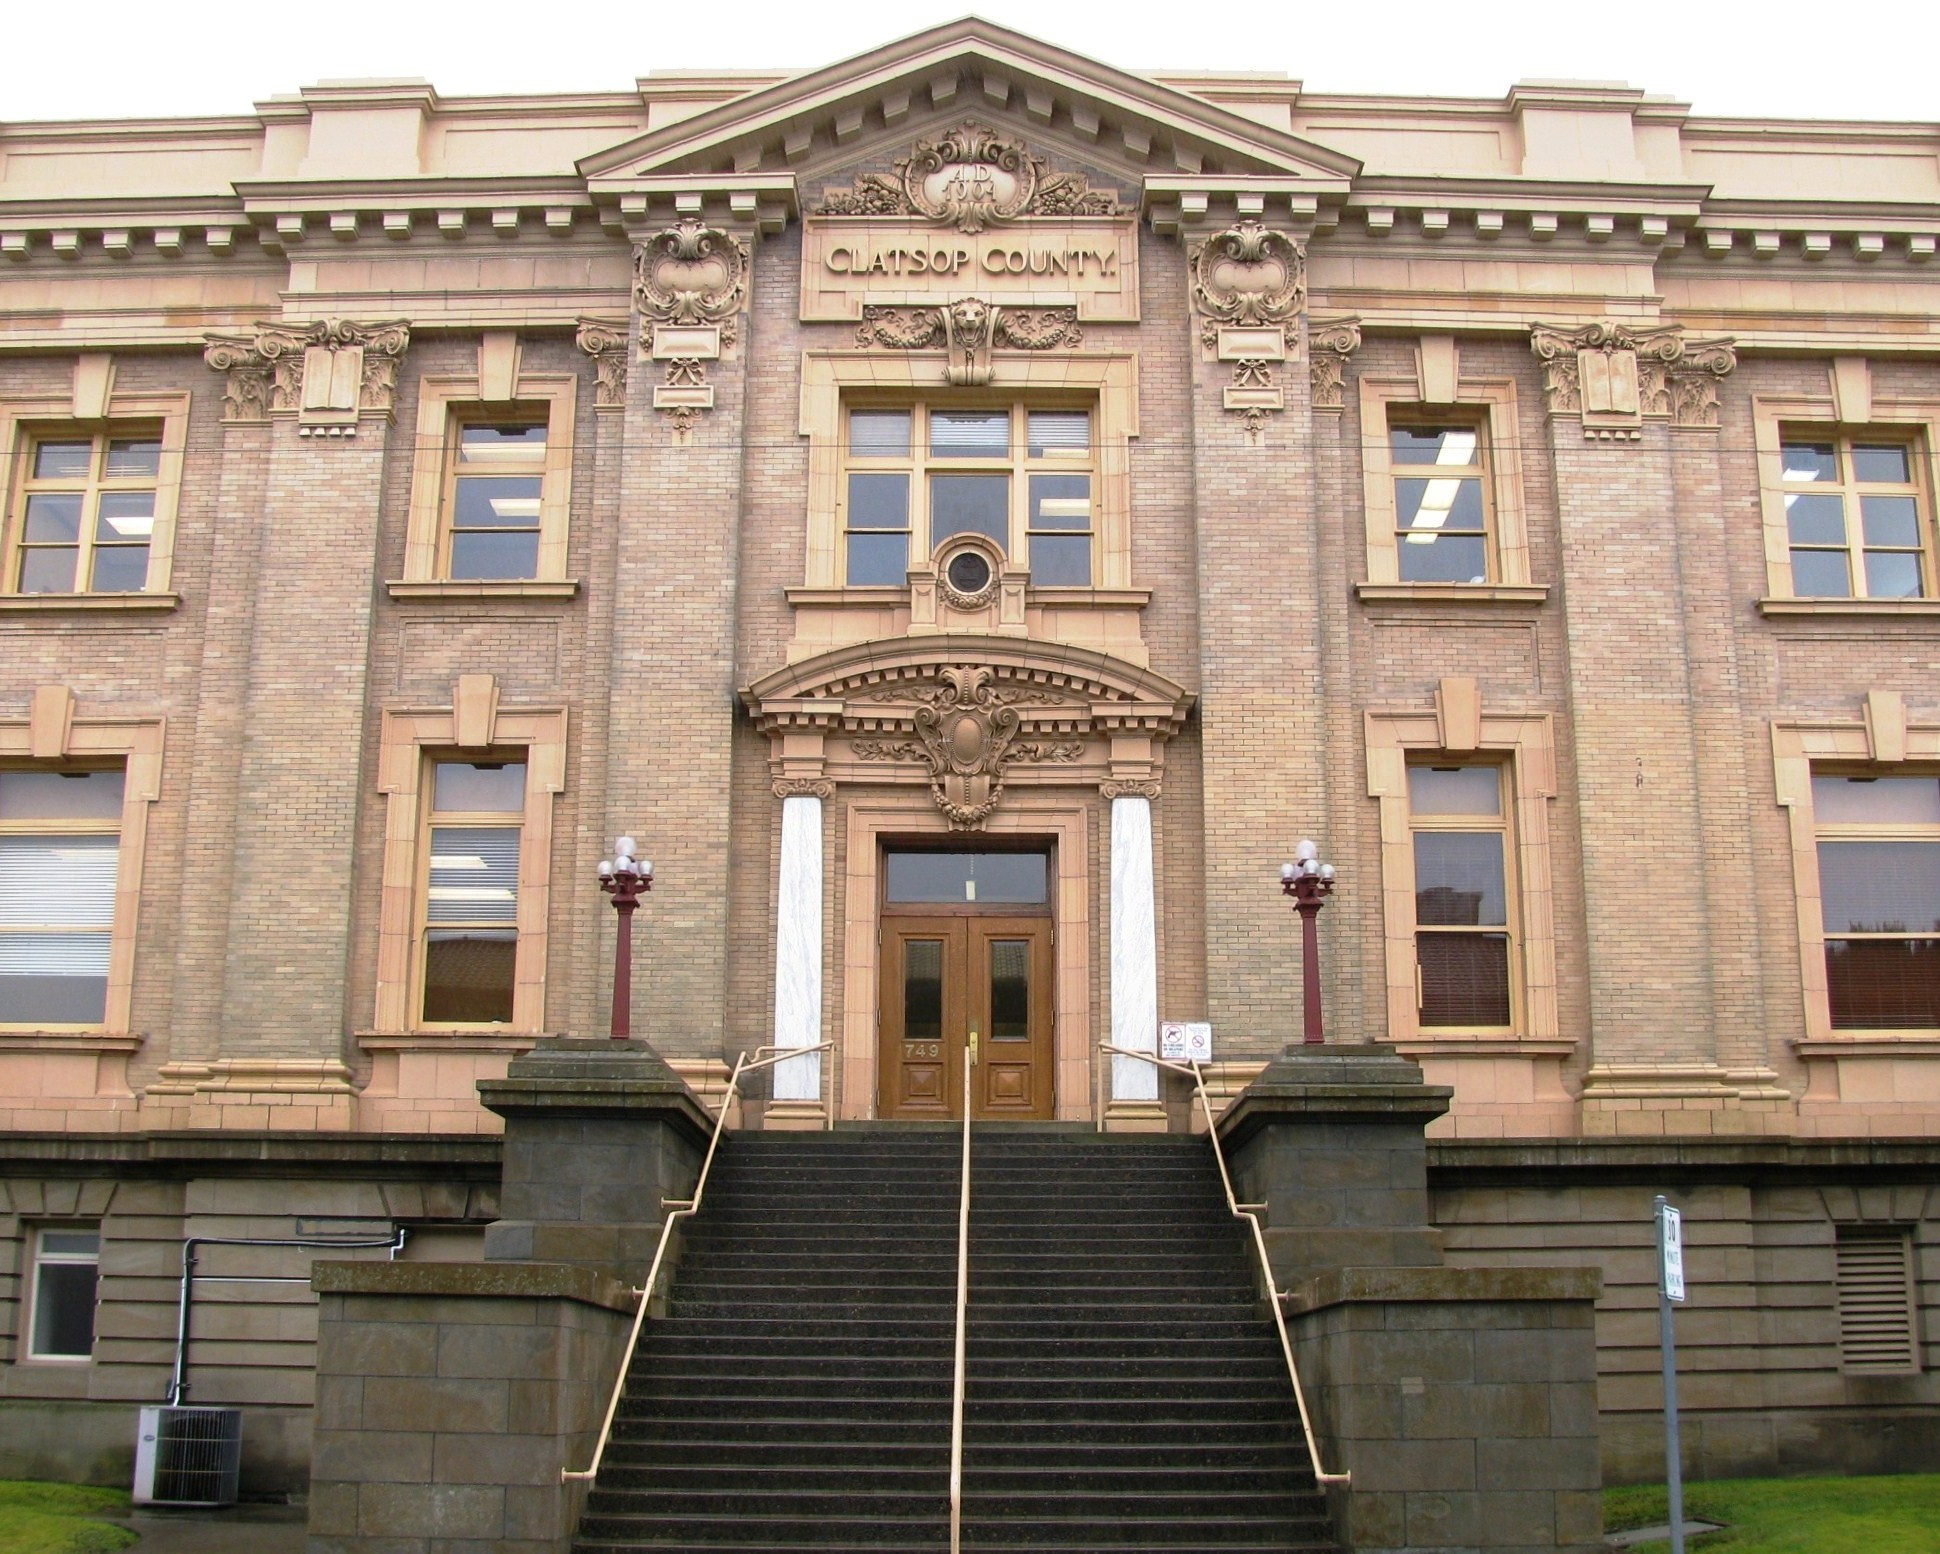 Clatsop County Circuit Court